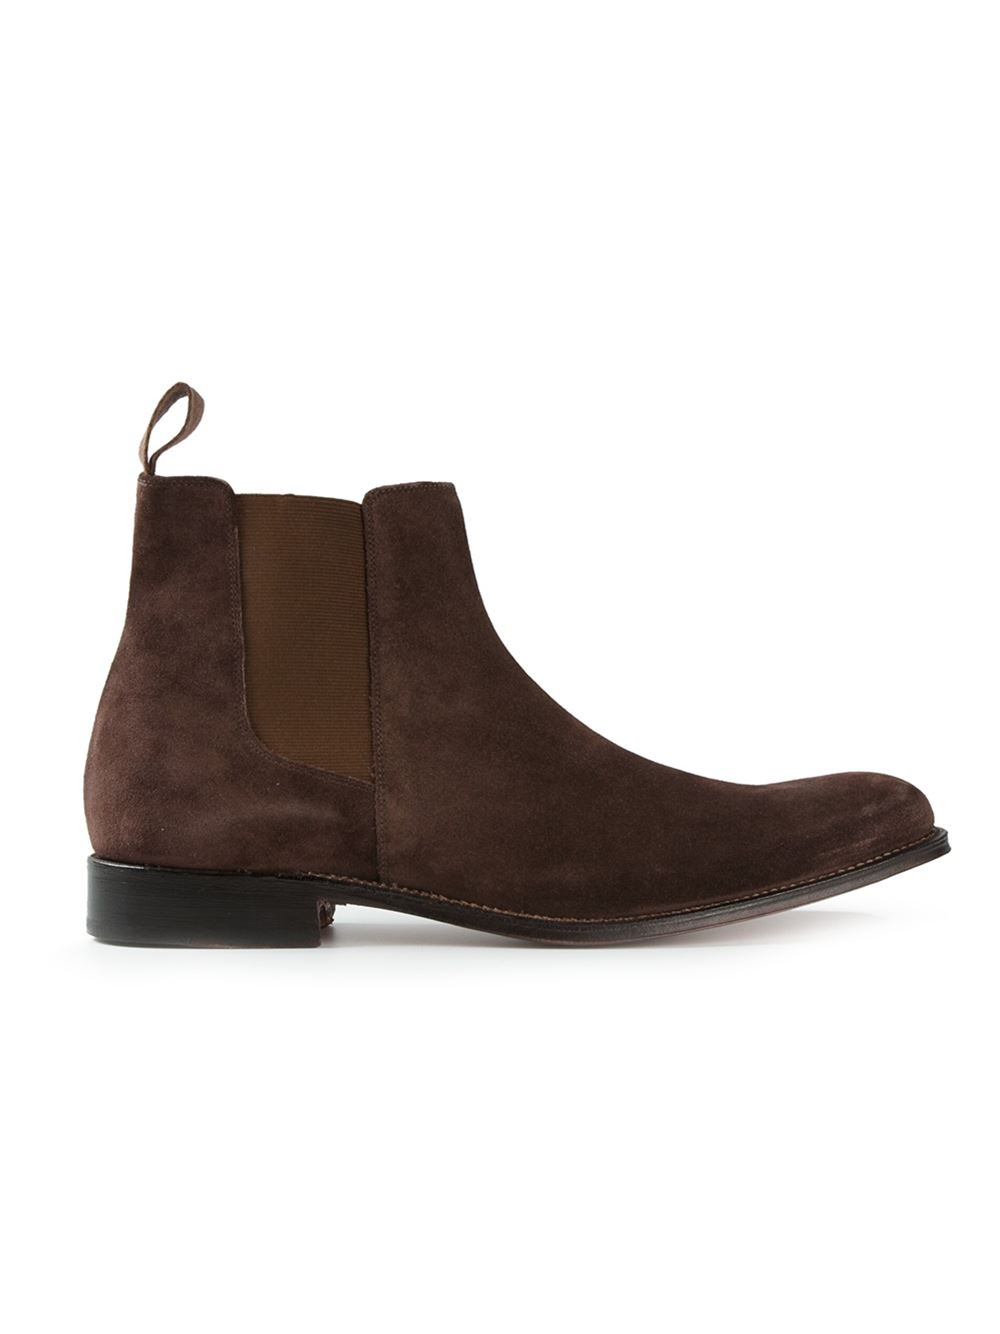 grenson classic chelsea boots in brown for men lyst. Black Bedroom Furniture Sets. Home Design Ideas